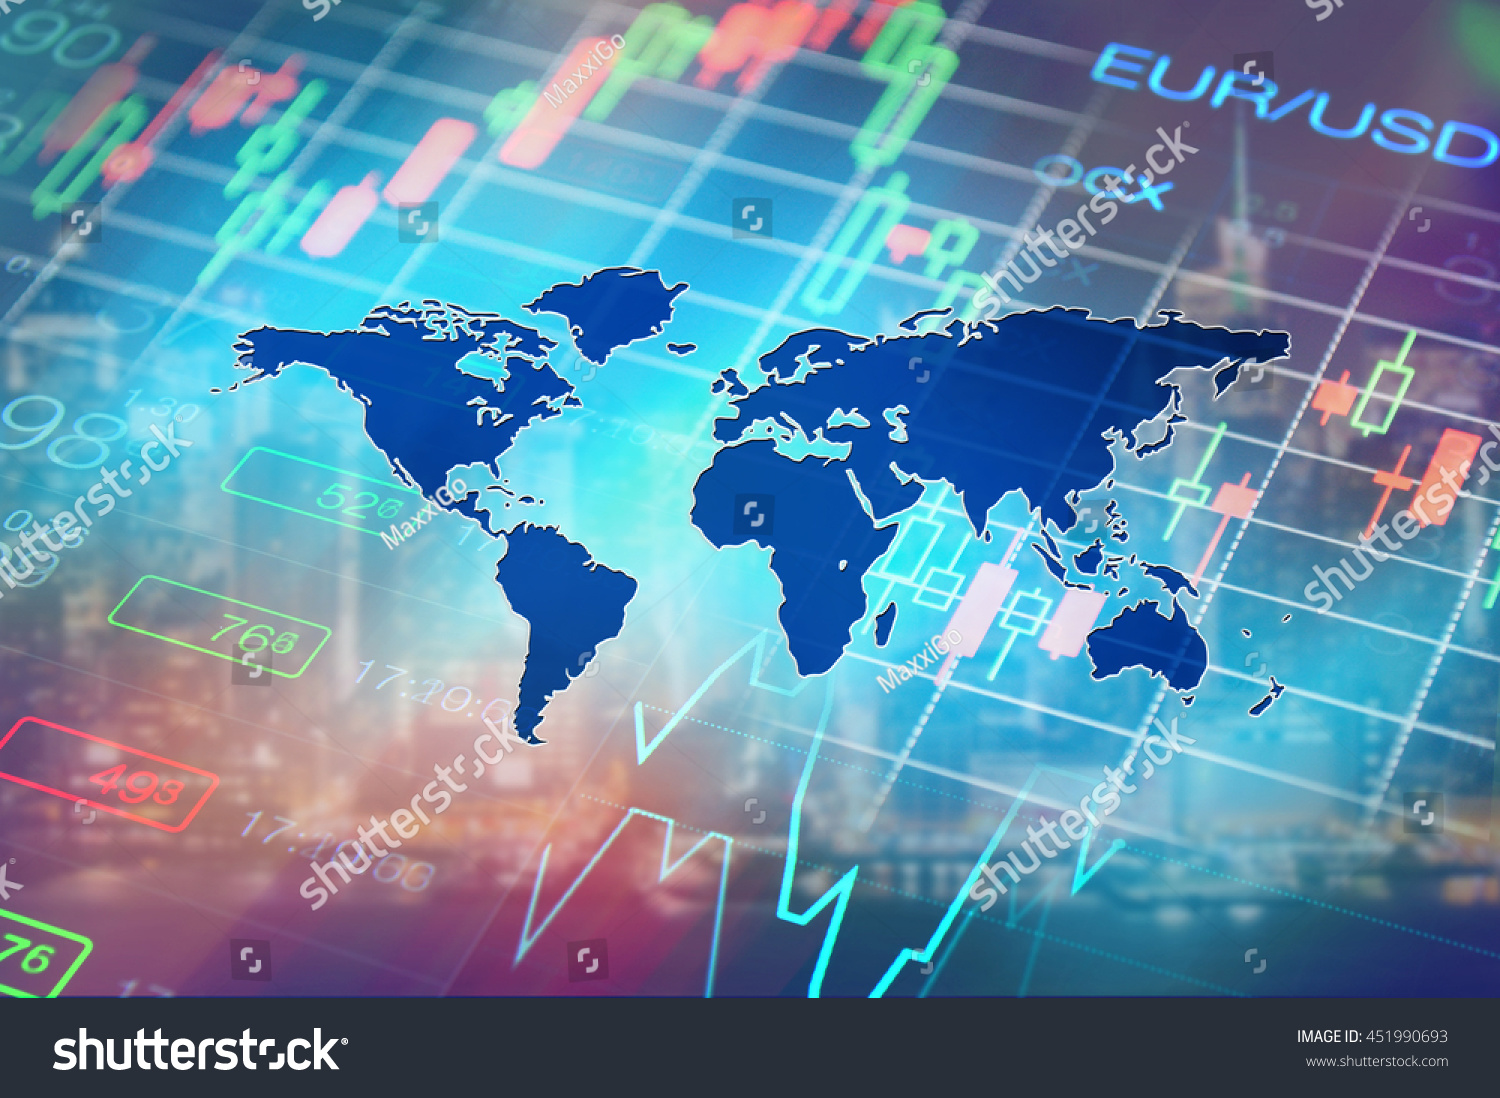 Finance global financial markets concept collage with stock market chart and forex data at world map background Financial abstract background global finance symbolic